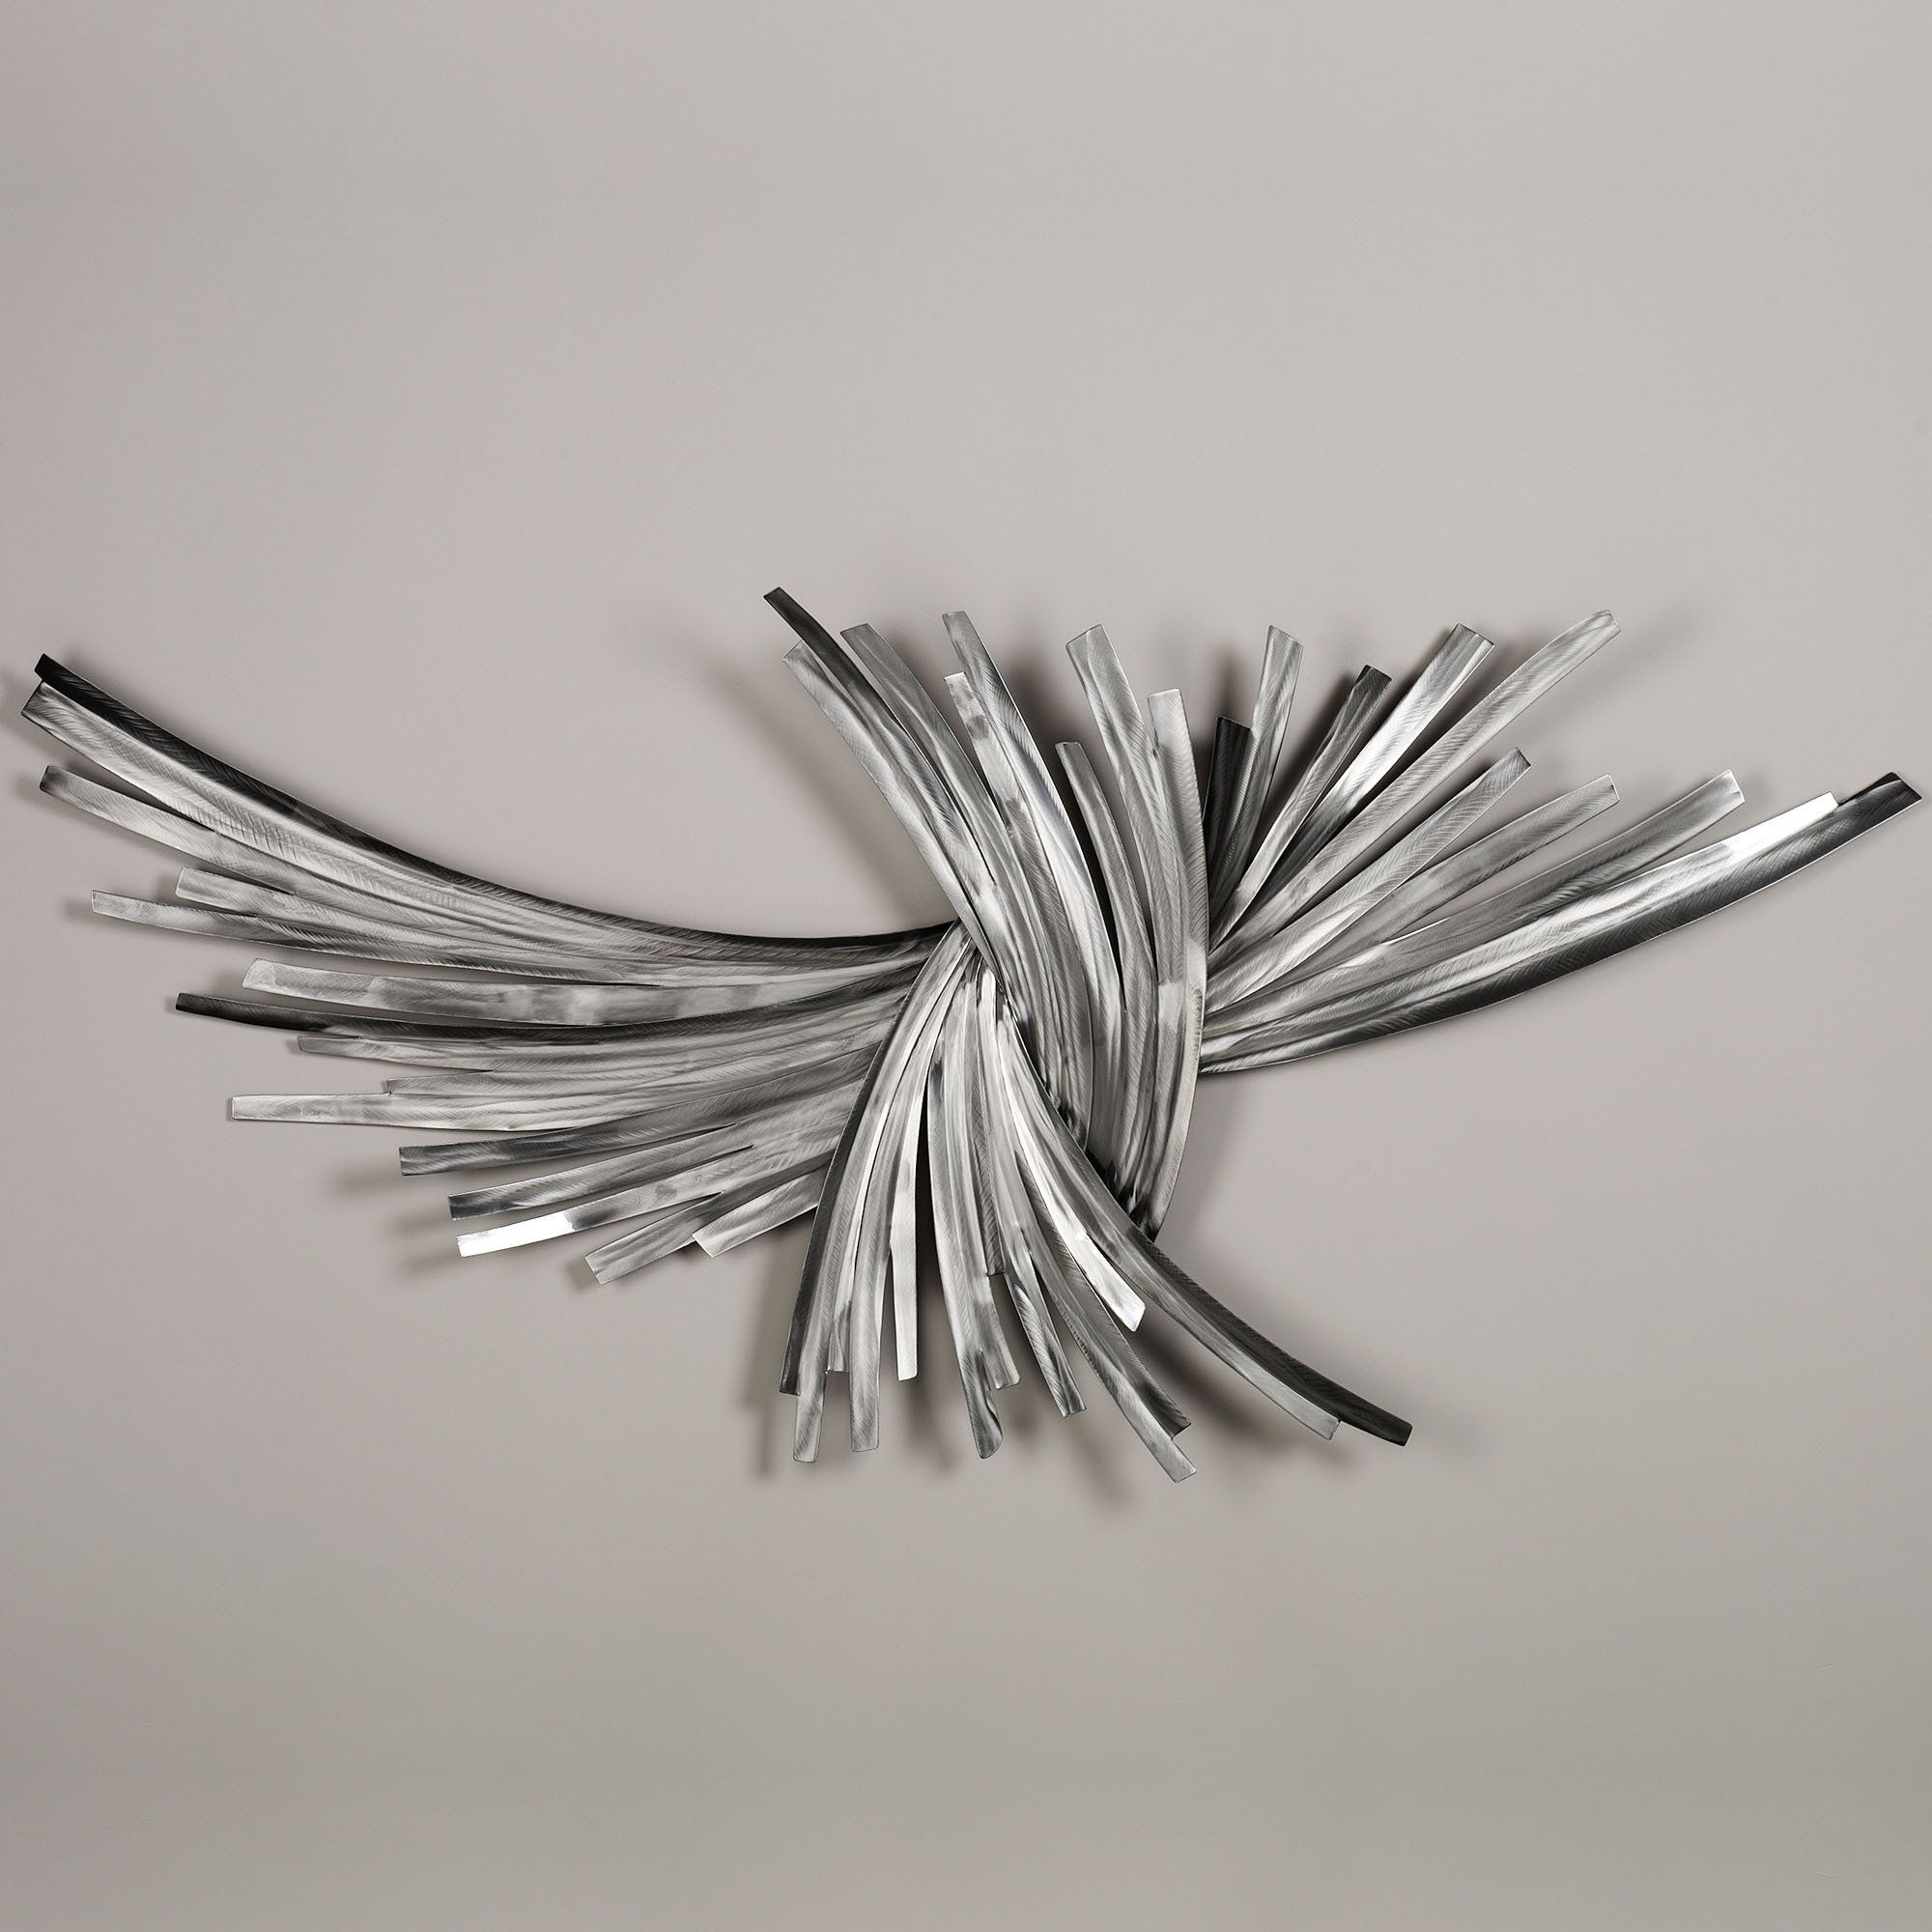 Infinity Silver Metal Wall Sculpture | Art I Like | Pinterest Within Cheap Metal Wall Art (View 8 of 20)